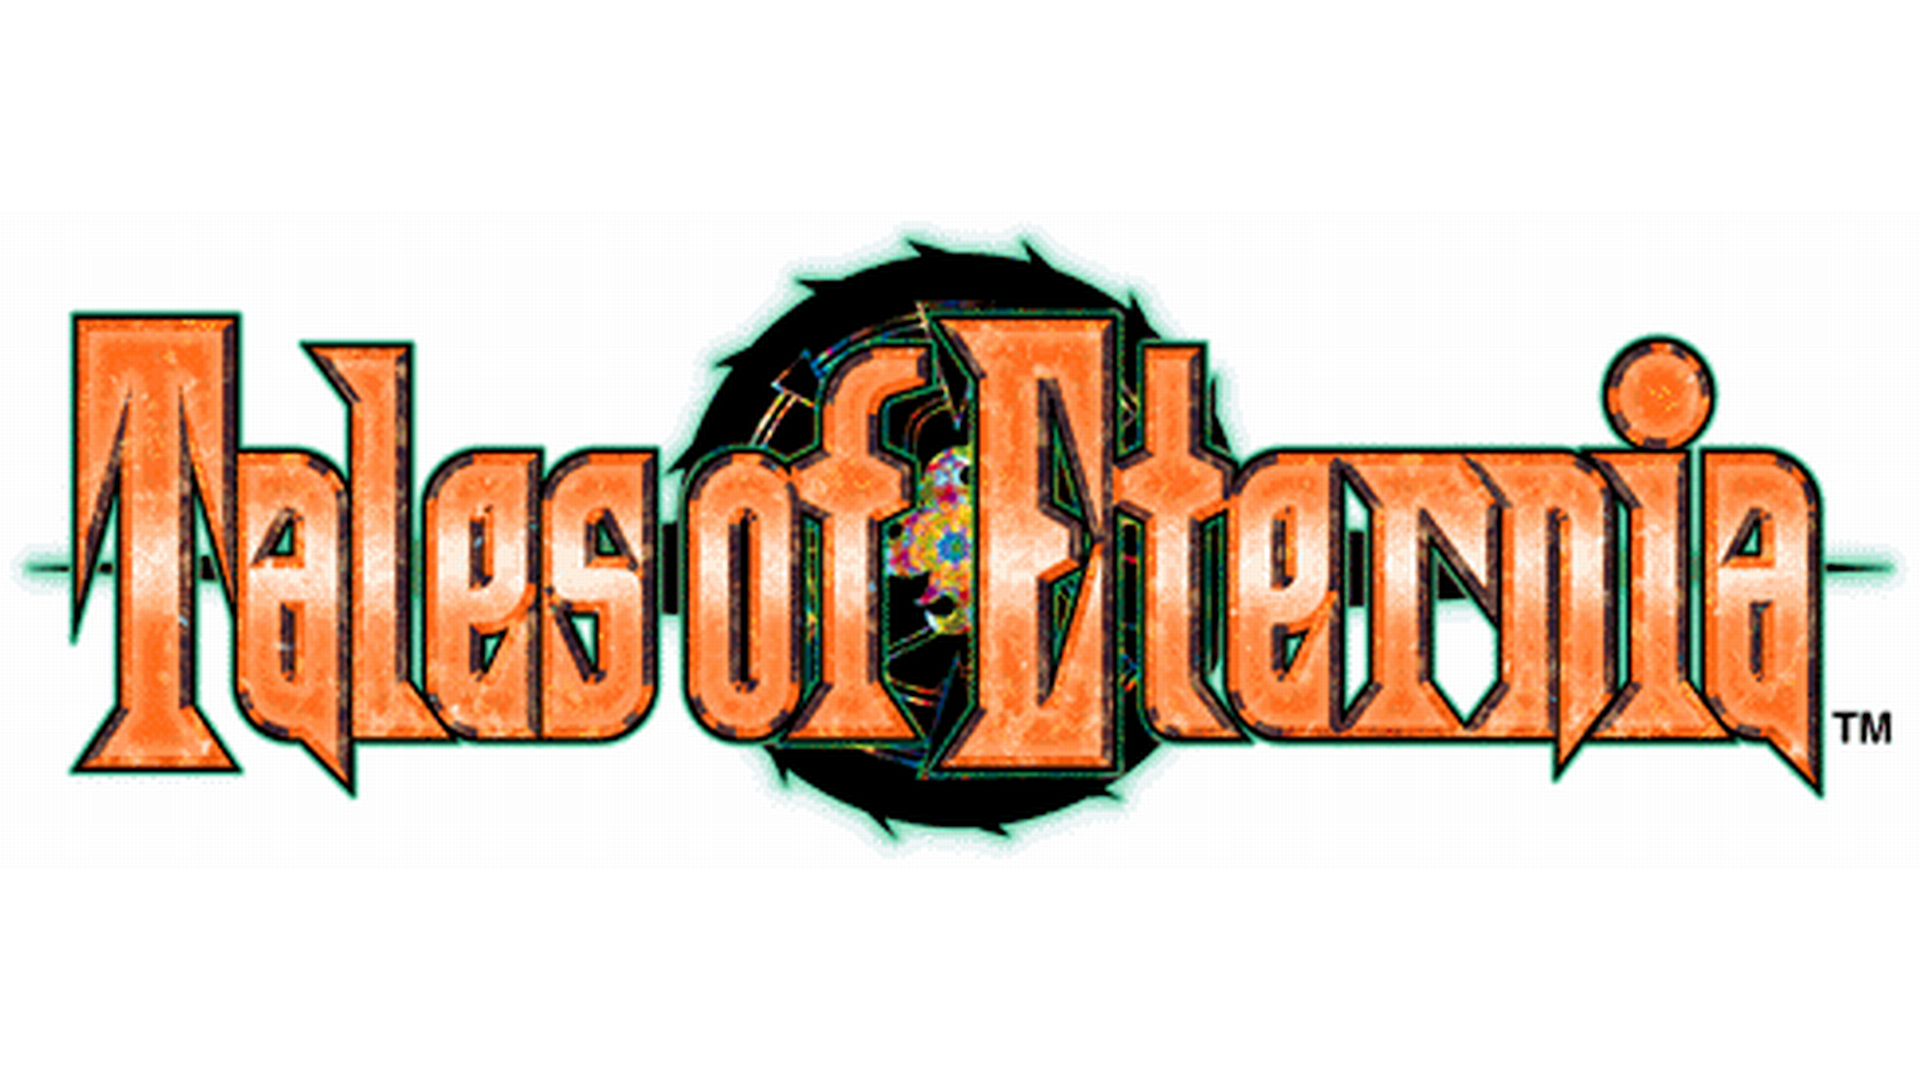 Tales of Eternia Logo